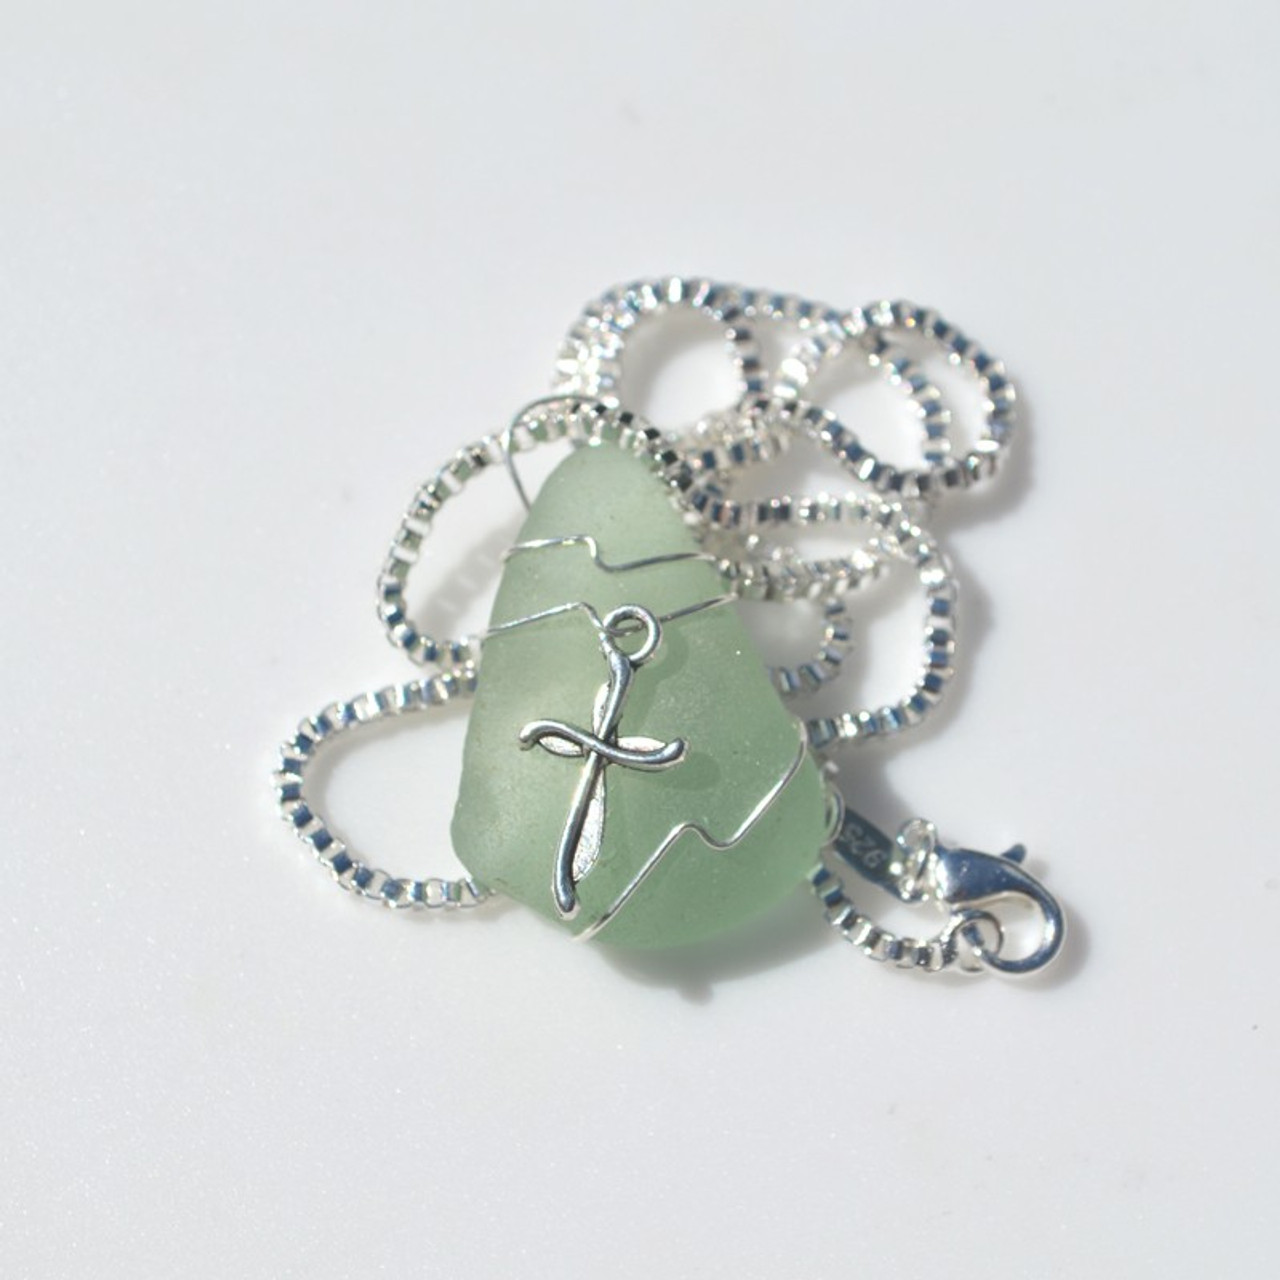 Genuine Sea Glass Necklace with a Silver Cross Charm - Choose the Color - Frosted, Green, Brown, or Aqua - Made to Order